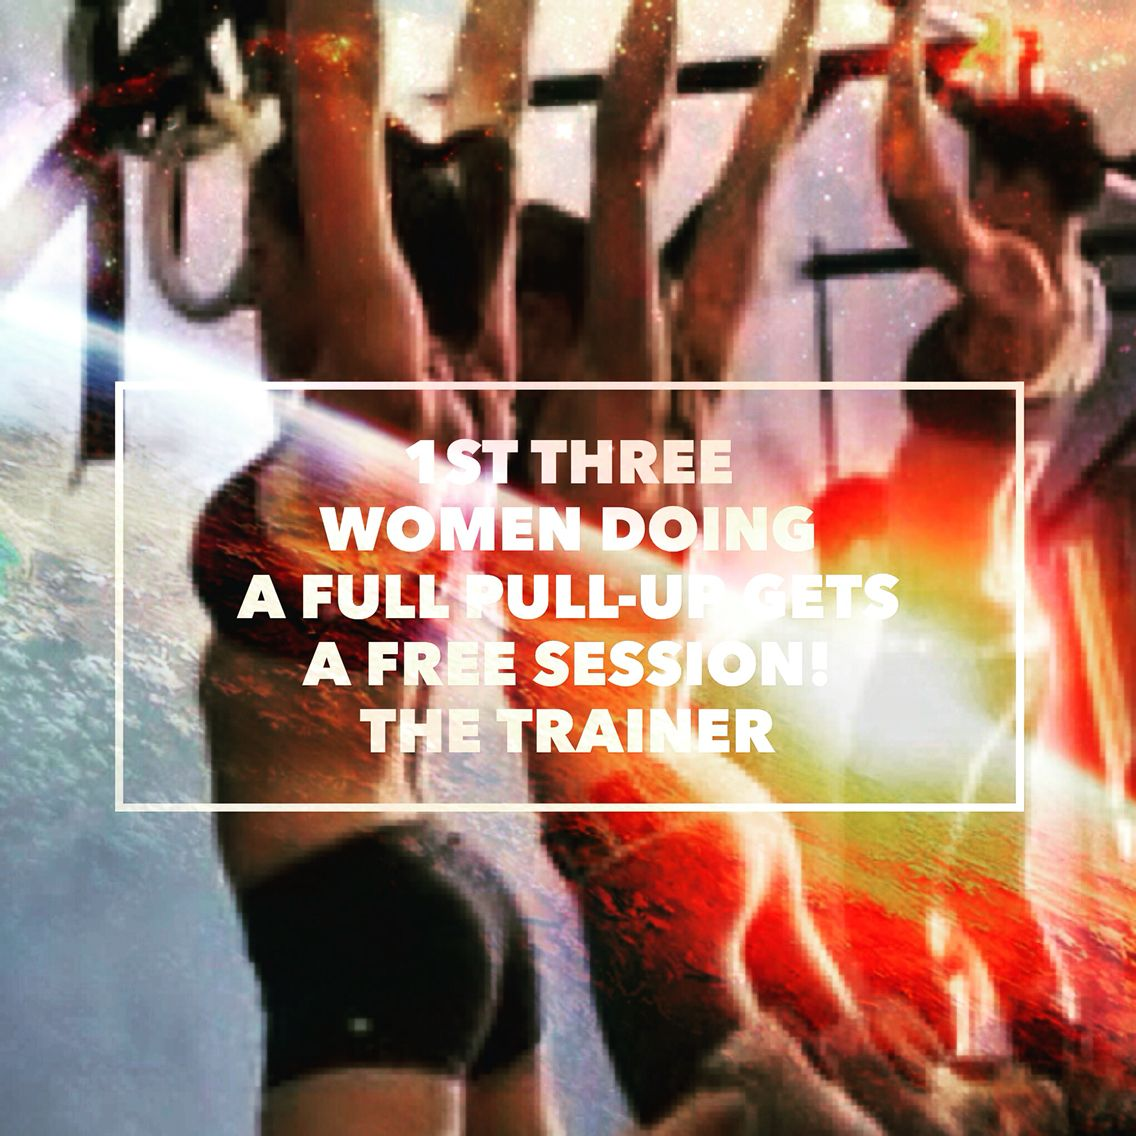 The first 3 women doing a full pull-up this year gets a free session. The Trainer http://www.thetrainerhoodriver.com #thetrainer #hoodriver#personaltrainer #functionaltraining #functionaltrainer#rusticparkour #insideoutfitnesshoodriver #ultramarathon #fit